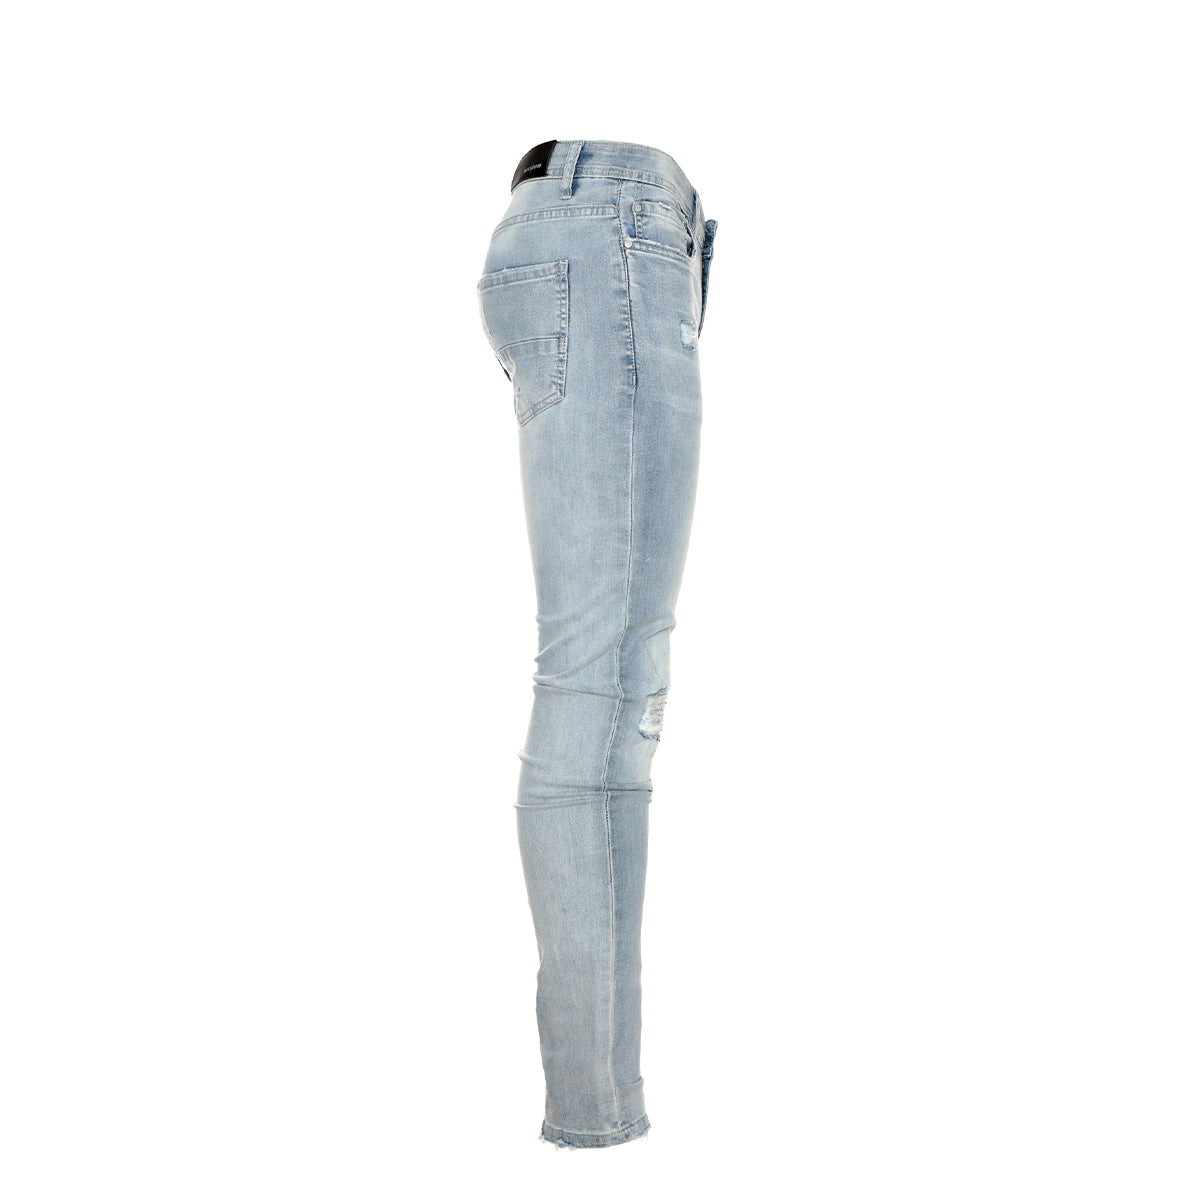 Black Denim Thrashed Men's Skinny Designer Jeans